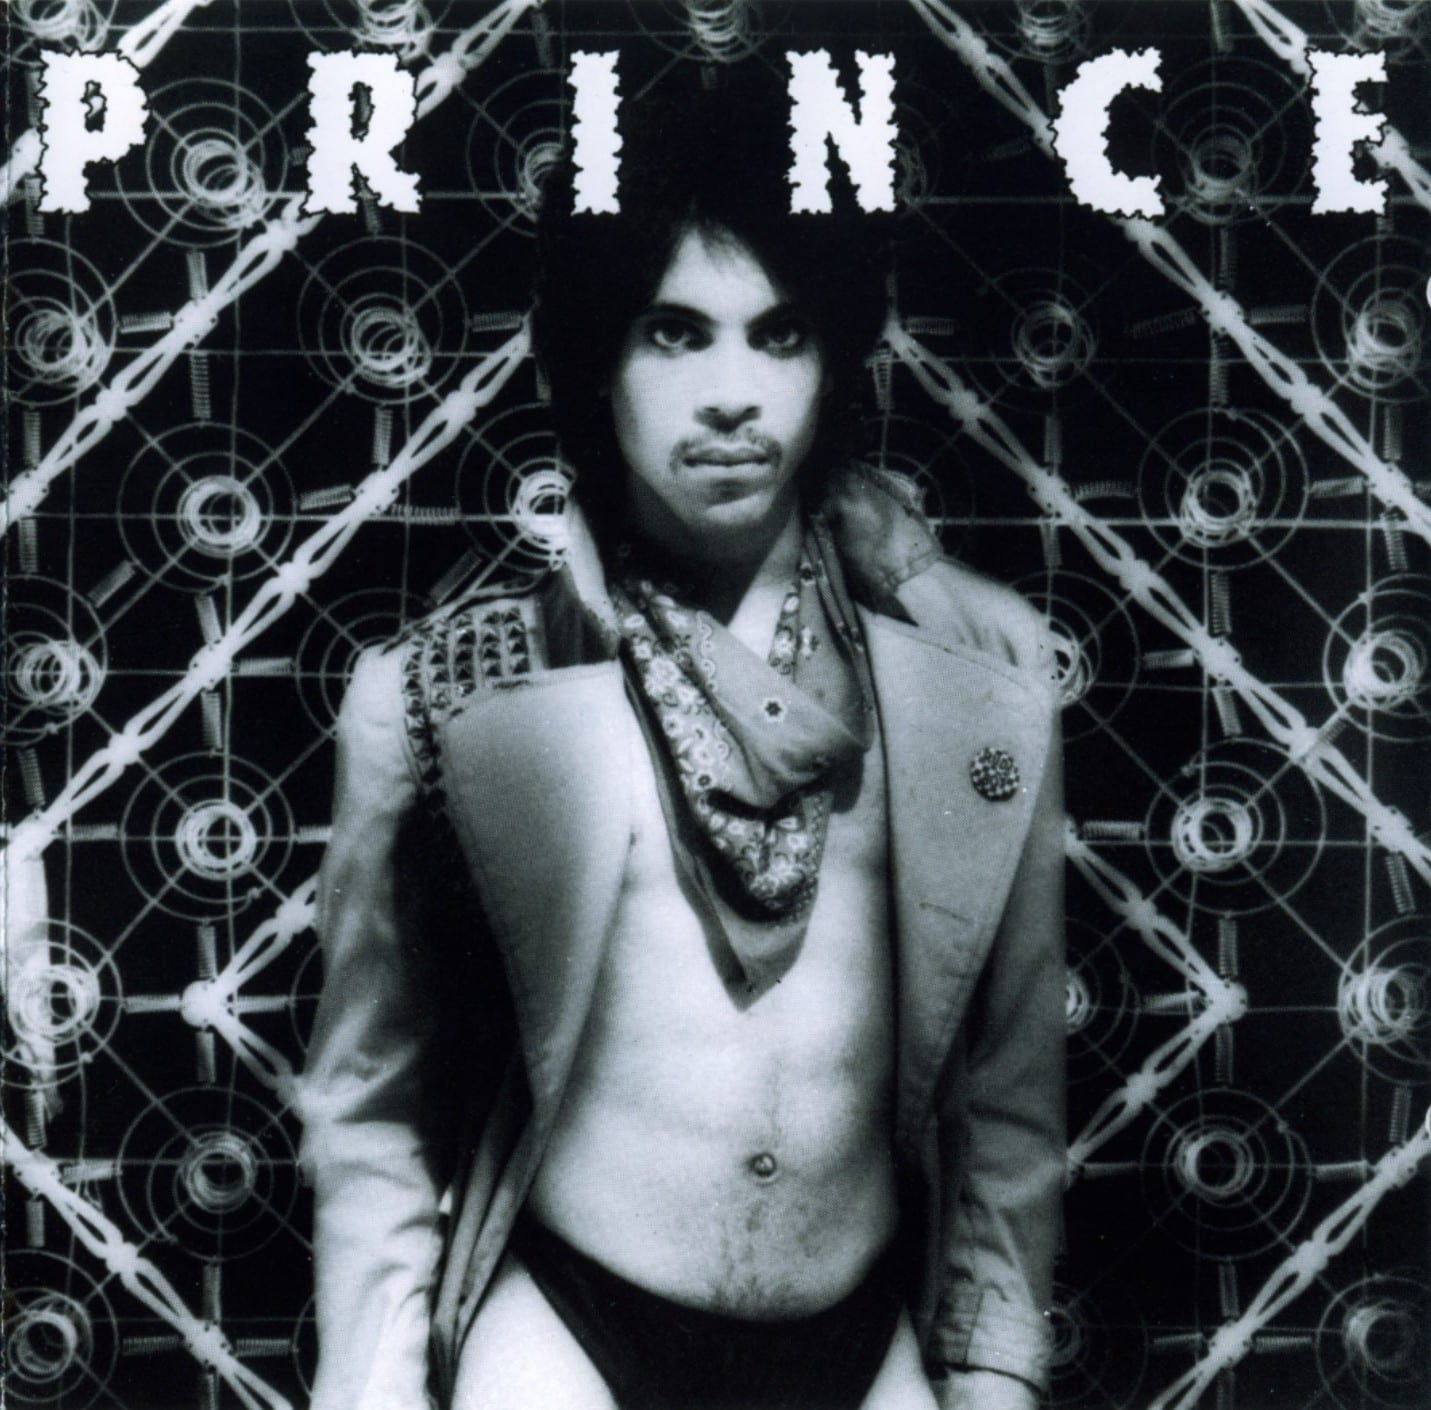 Prince - Controversy (Expanded Edition) (1981) CD 9